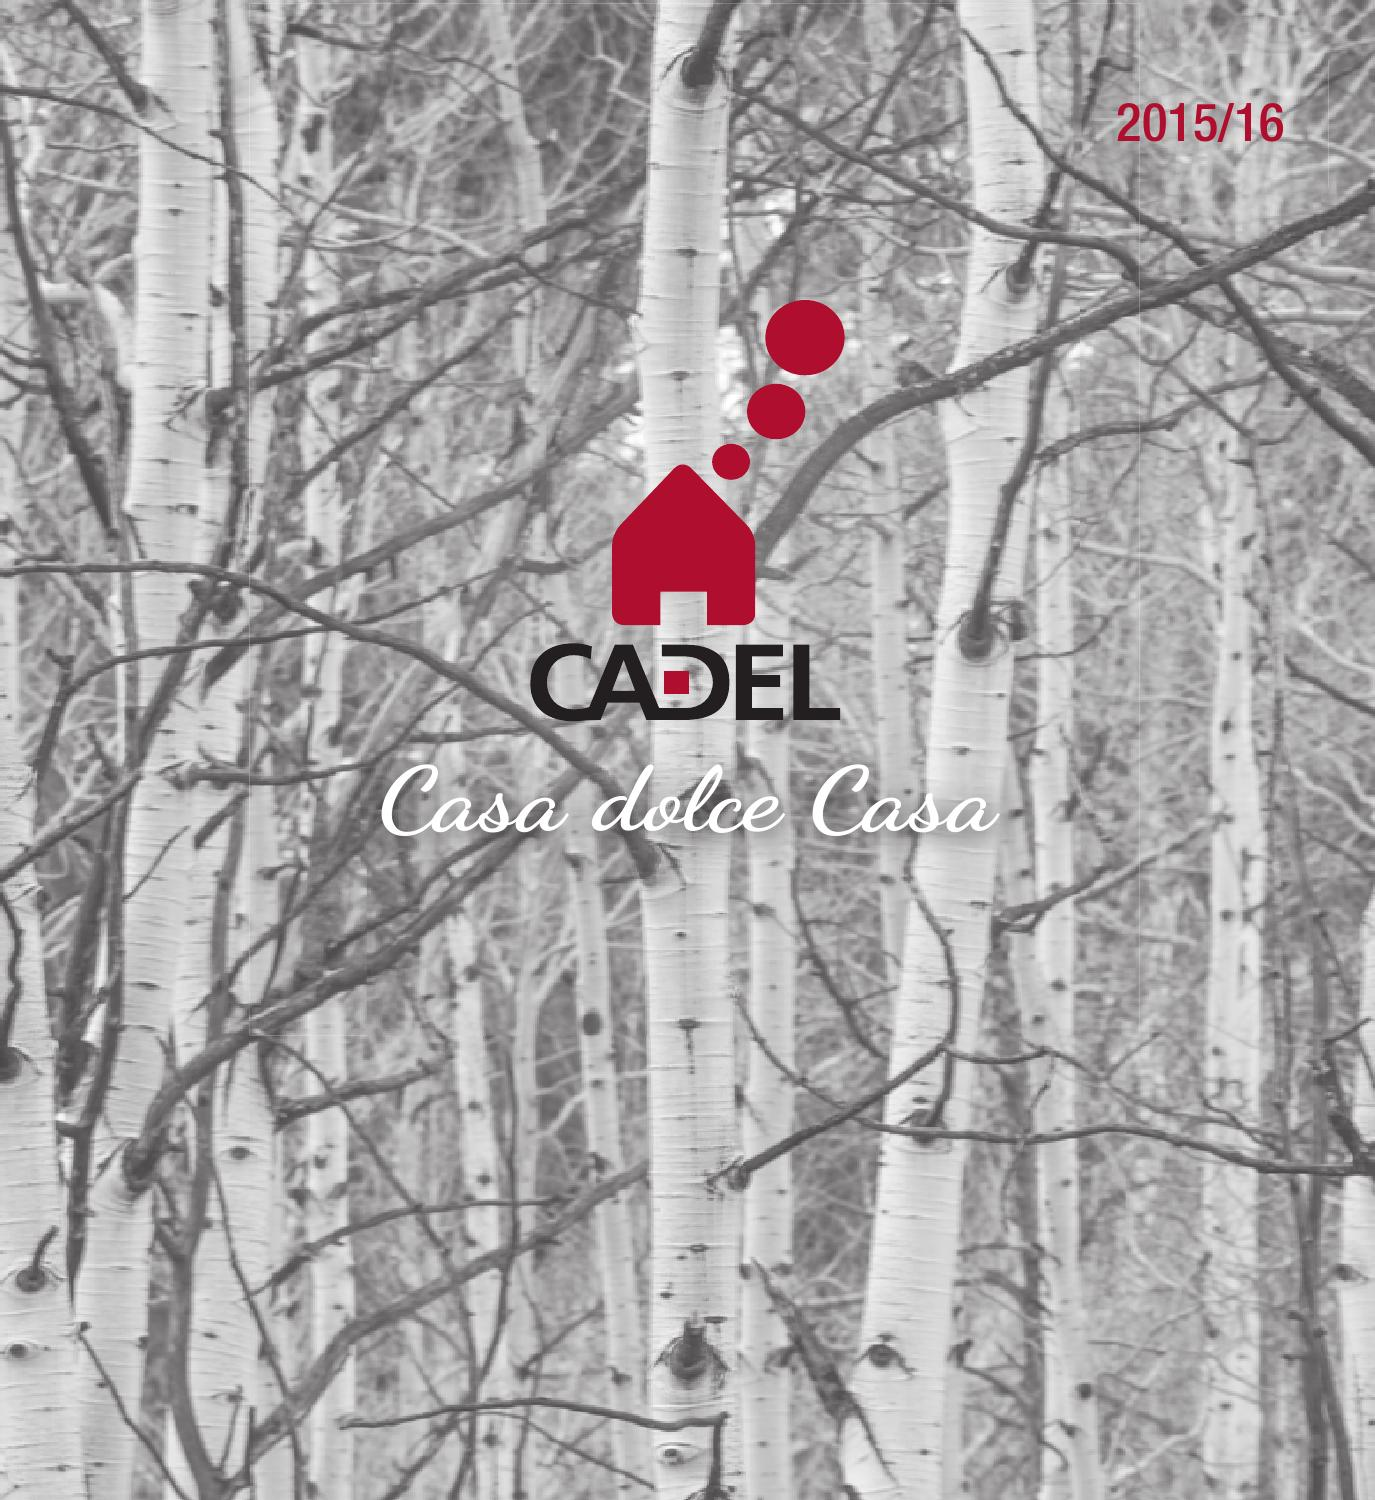 Cadel catalogo 2015-16 by StudioBreda - issuu